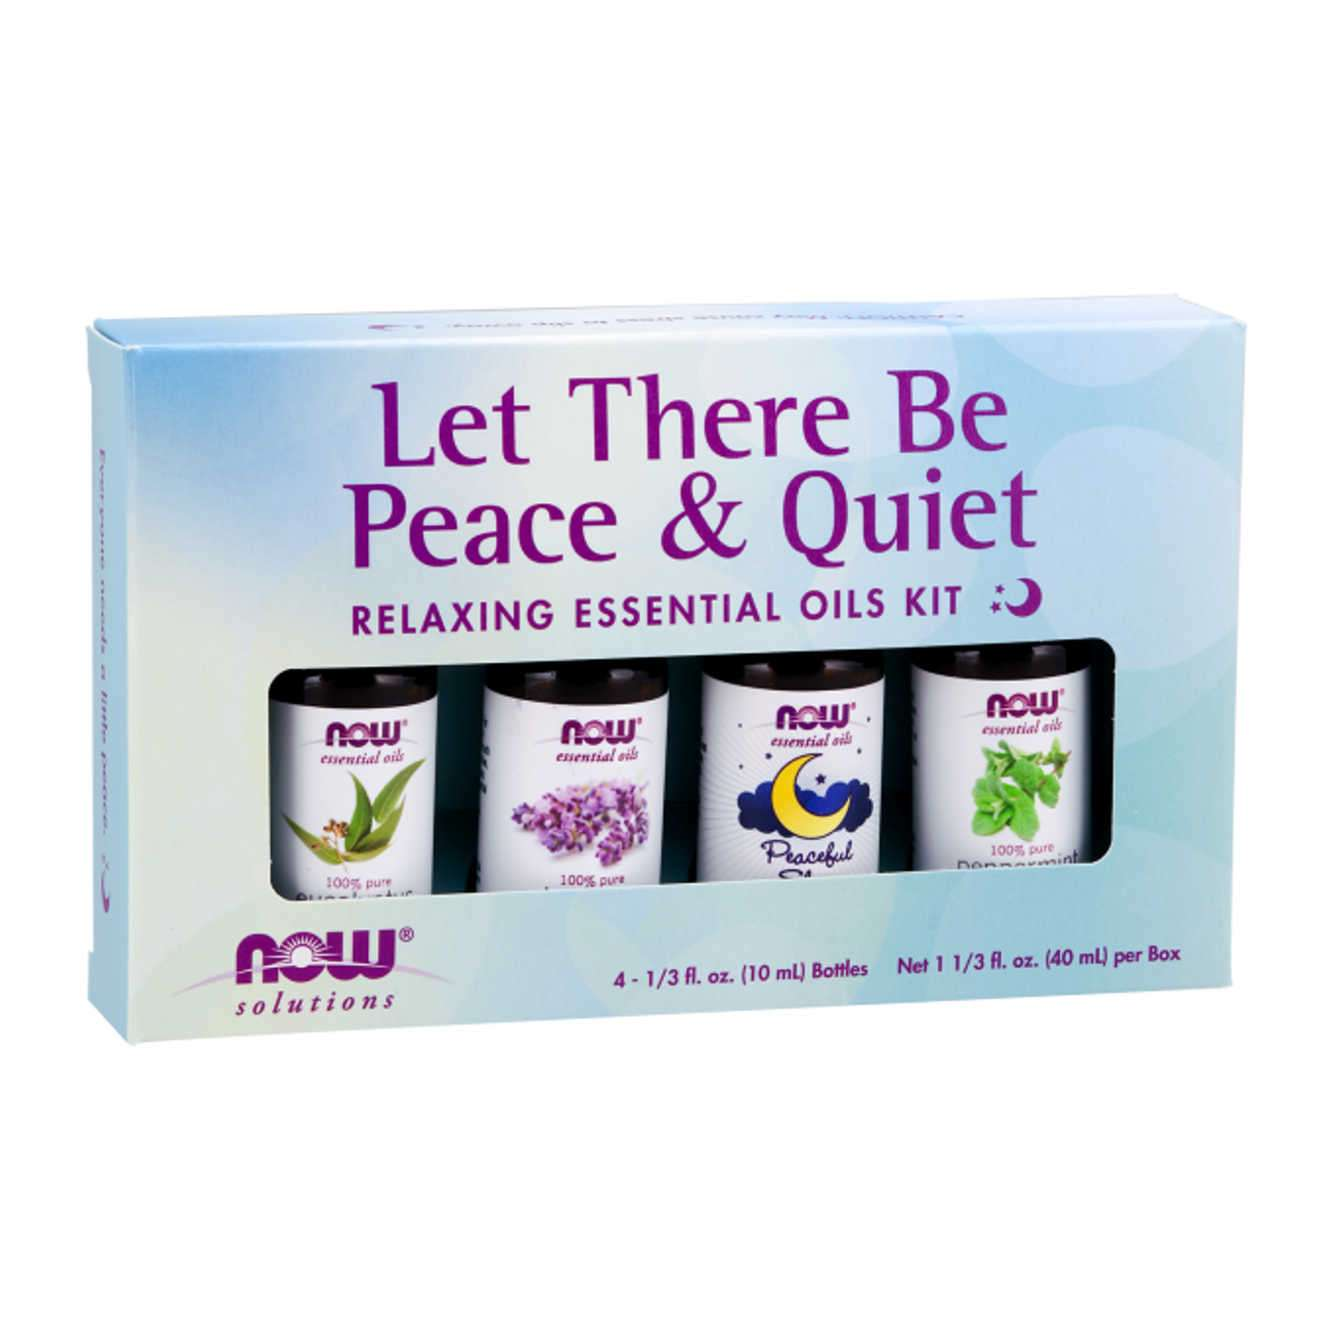 RELAXING ESSENTIAL OILS KIT - 4 X10ml